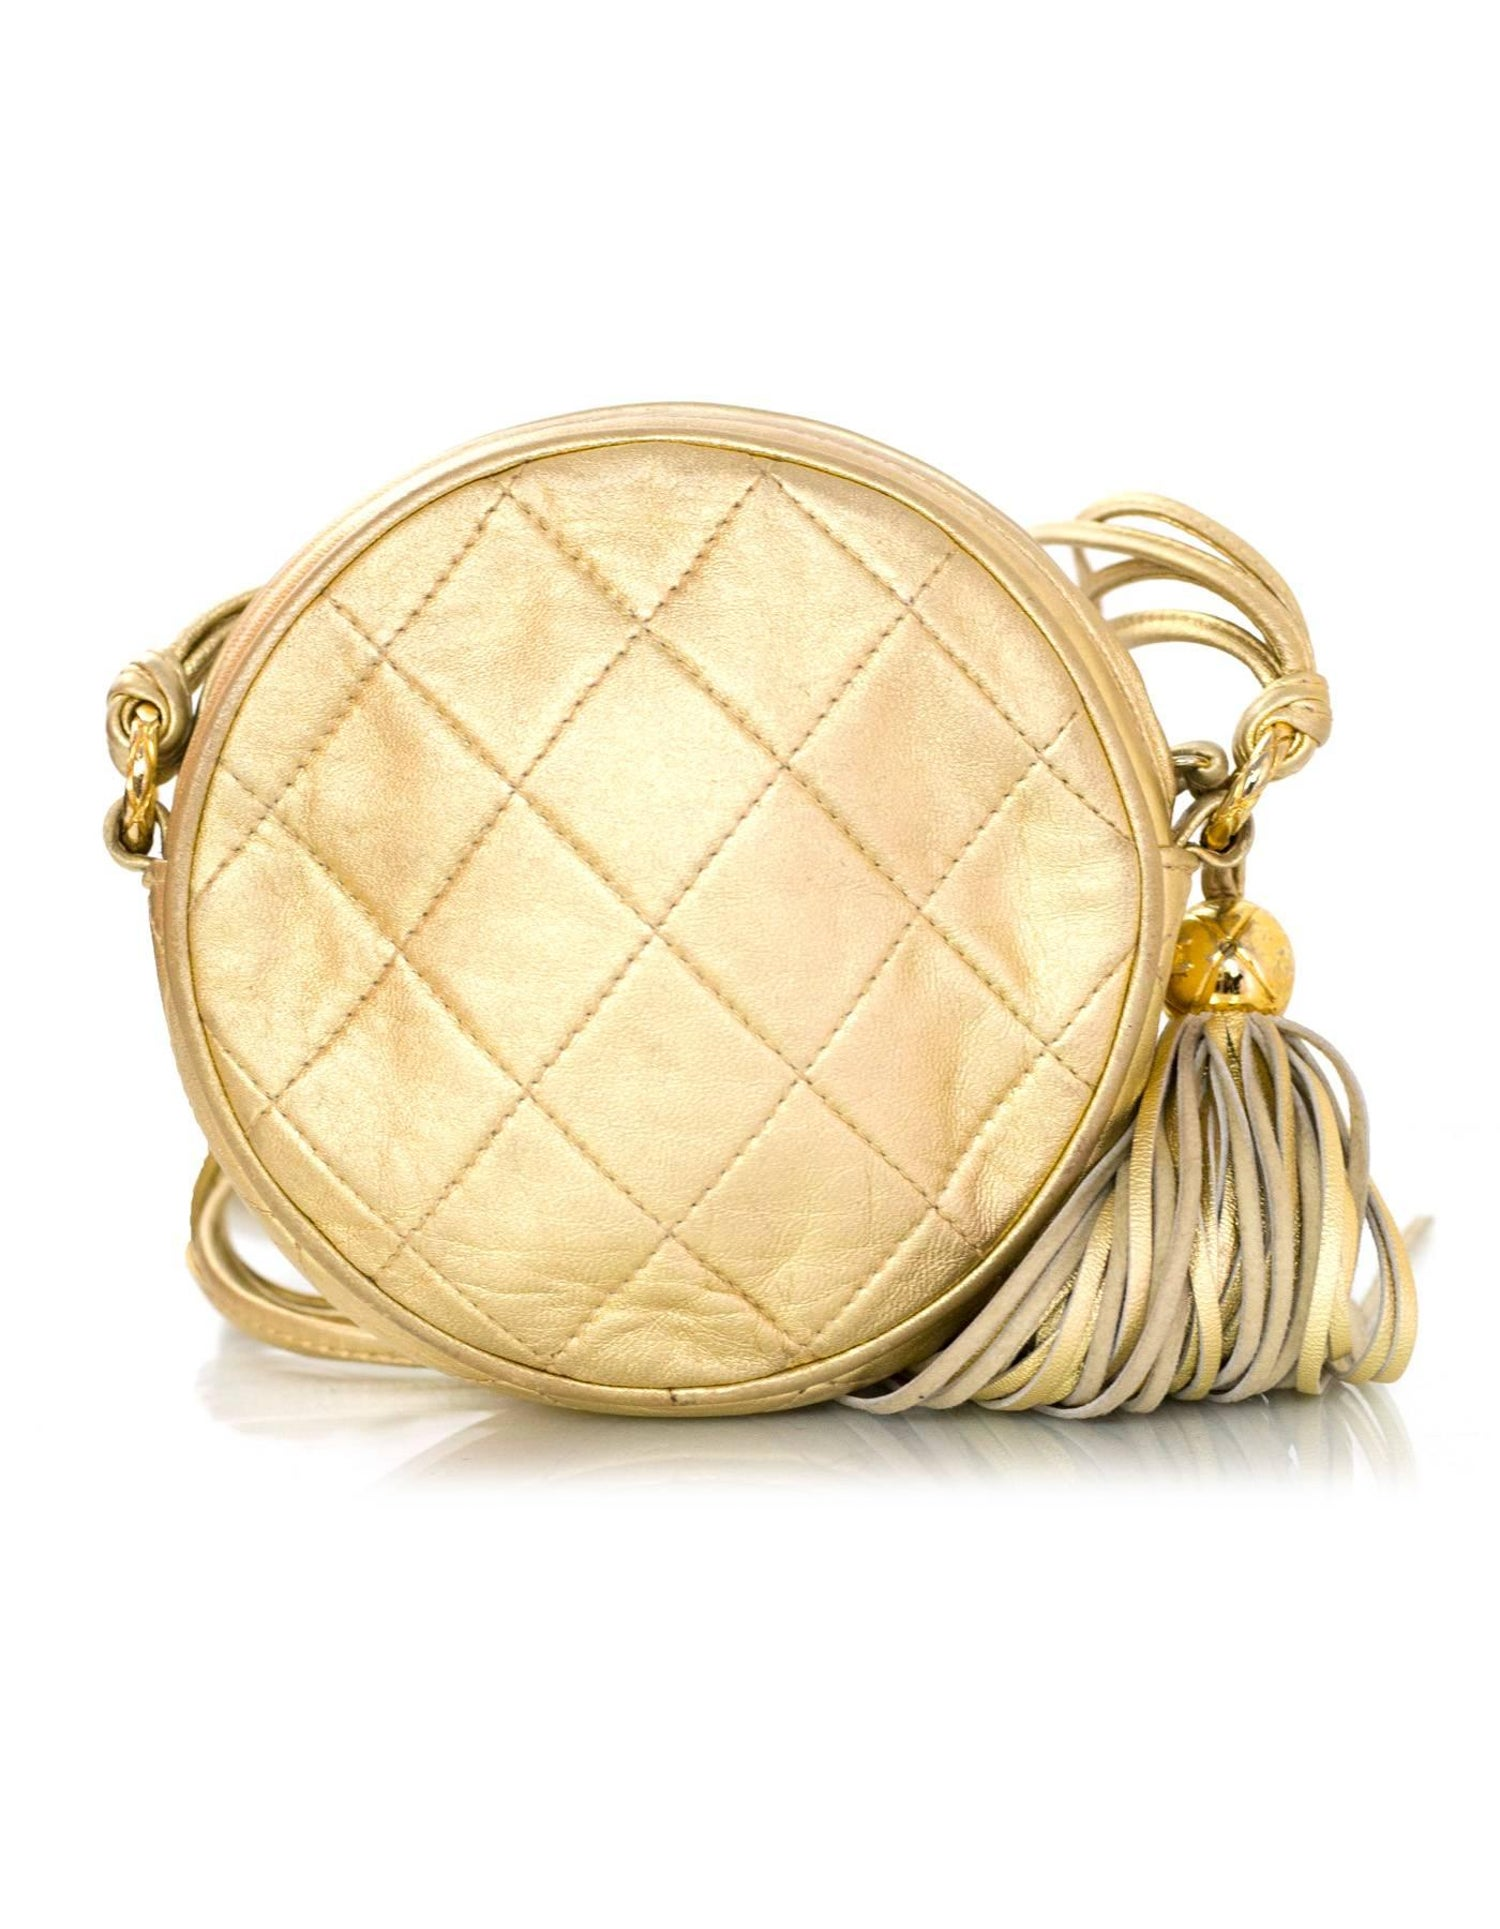 5e997a66a57344 Chanel Vintage '90s Gold Lambskin Leather Quilted Circle Crossbody Bag For  Sale at 1stdibs